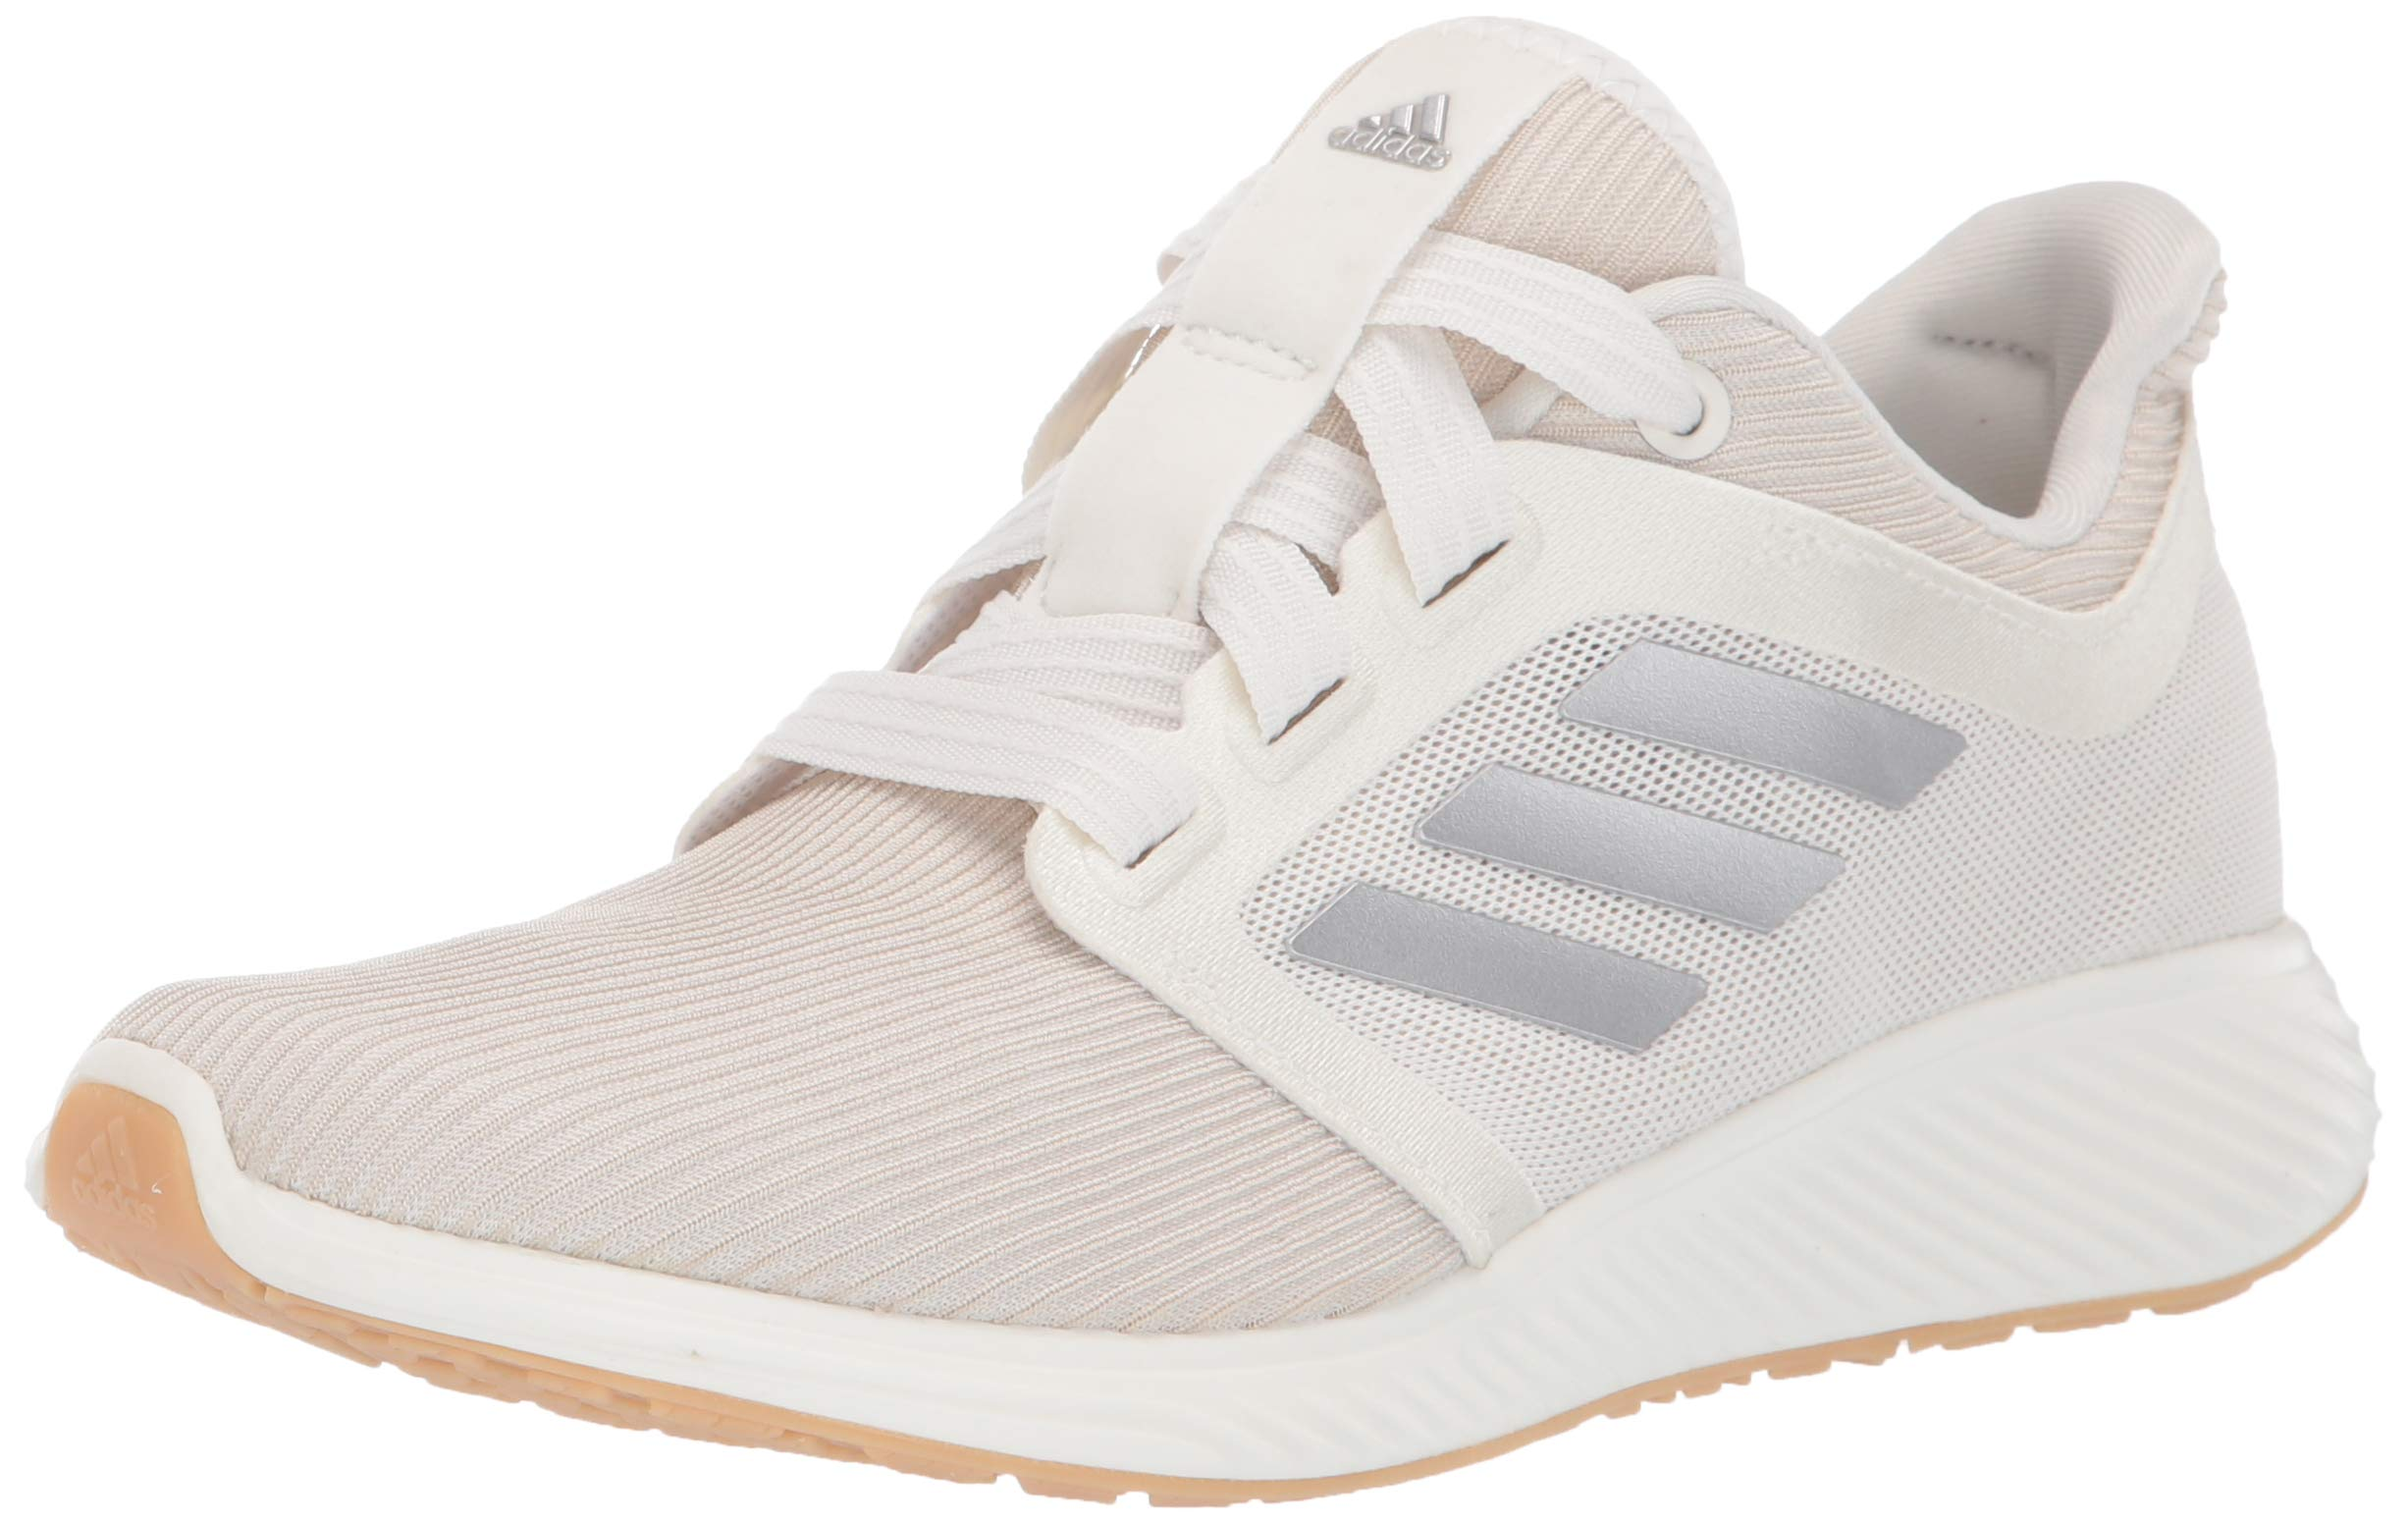 adidas Women's Edge Lux 3 Running Shoe, st Pale Nude/tech Silver Metallic/Cloud White, 5 M US